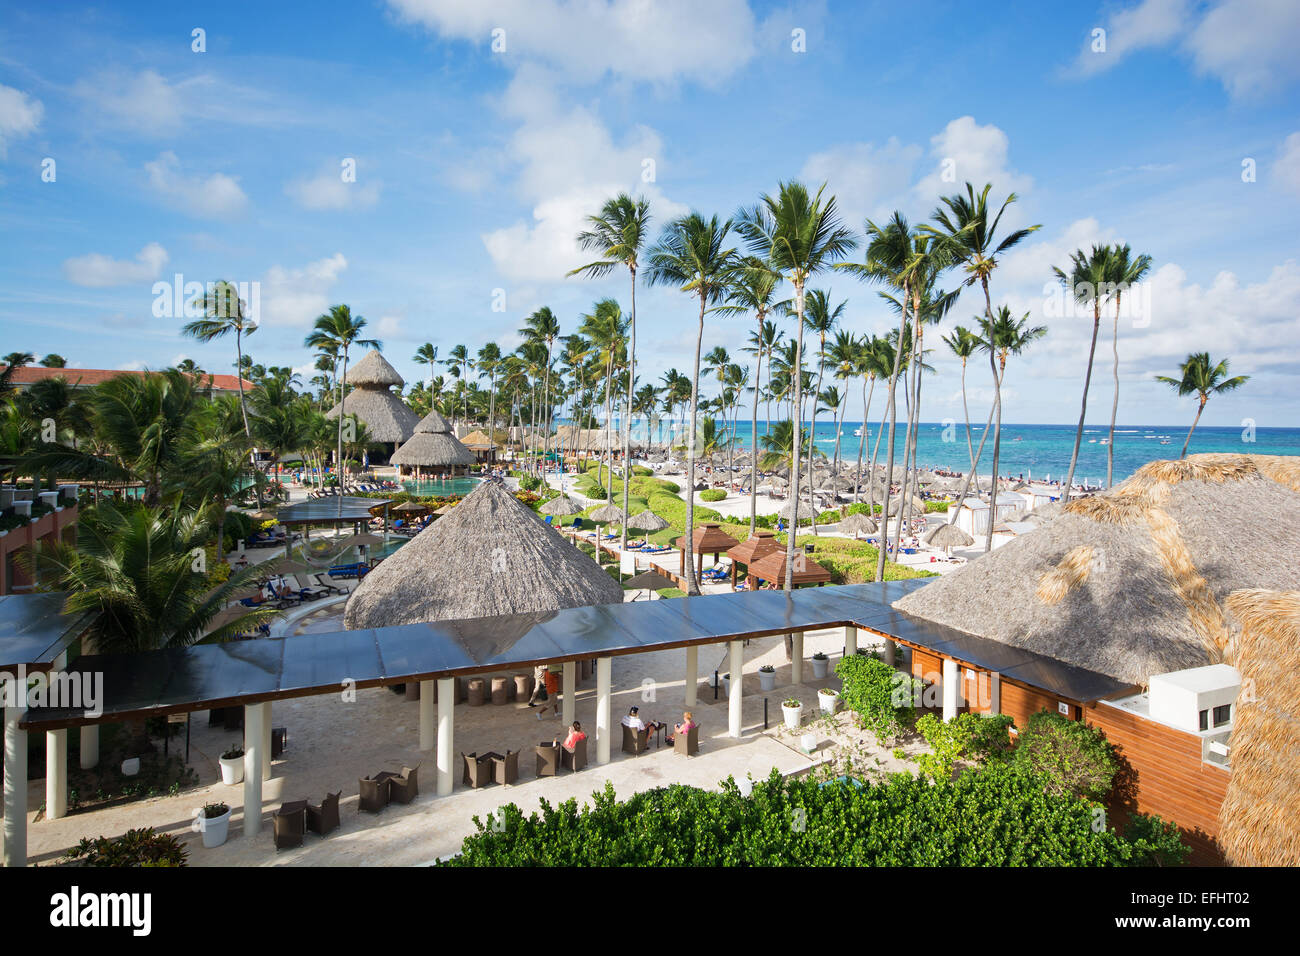 DOMINICAN REPUBLIC. The Secrets Royal Beach and Now Larimar resorts at Punta Cana. 2015. - Stock Image